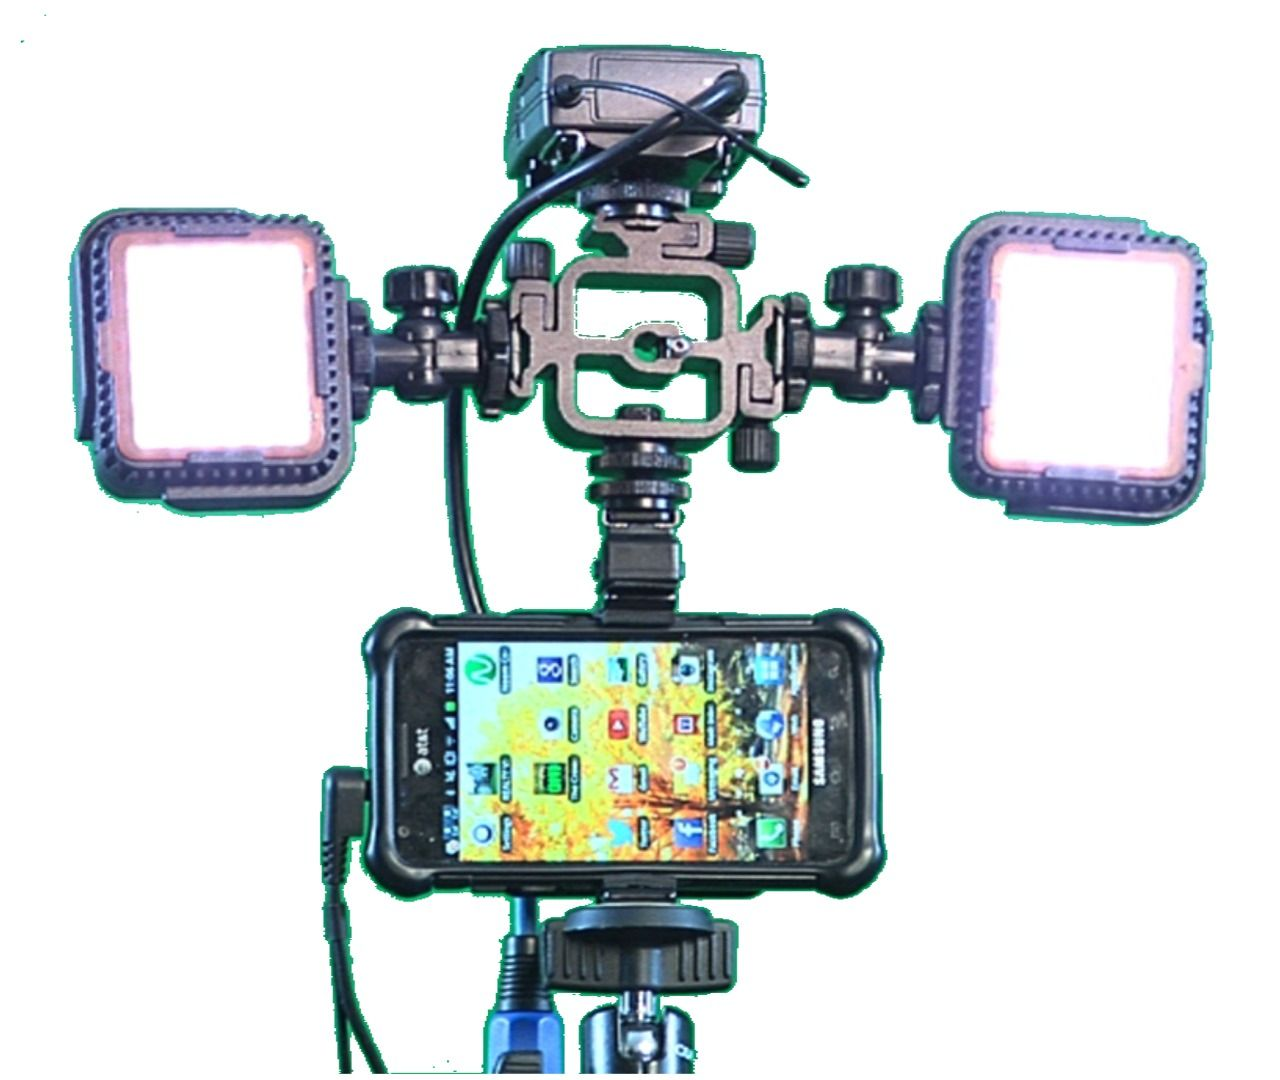 Now you can Broadcast LIVE from Anywhere using your Smartphone and Ustream or Livestream or Youtube. No other mount will connect to so many options. For More Infromation Please visit wwww.UniGripPro.com